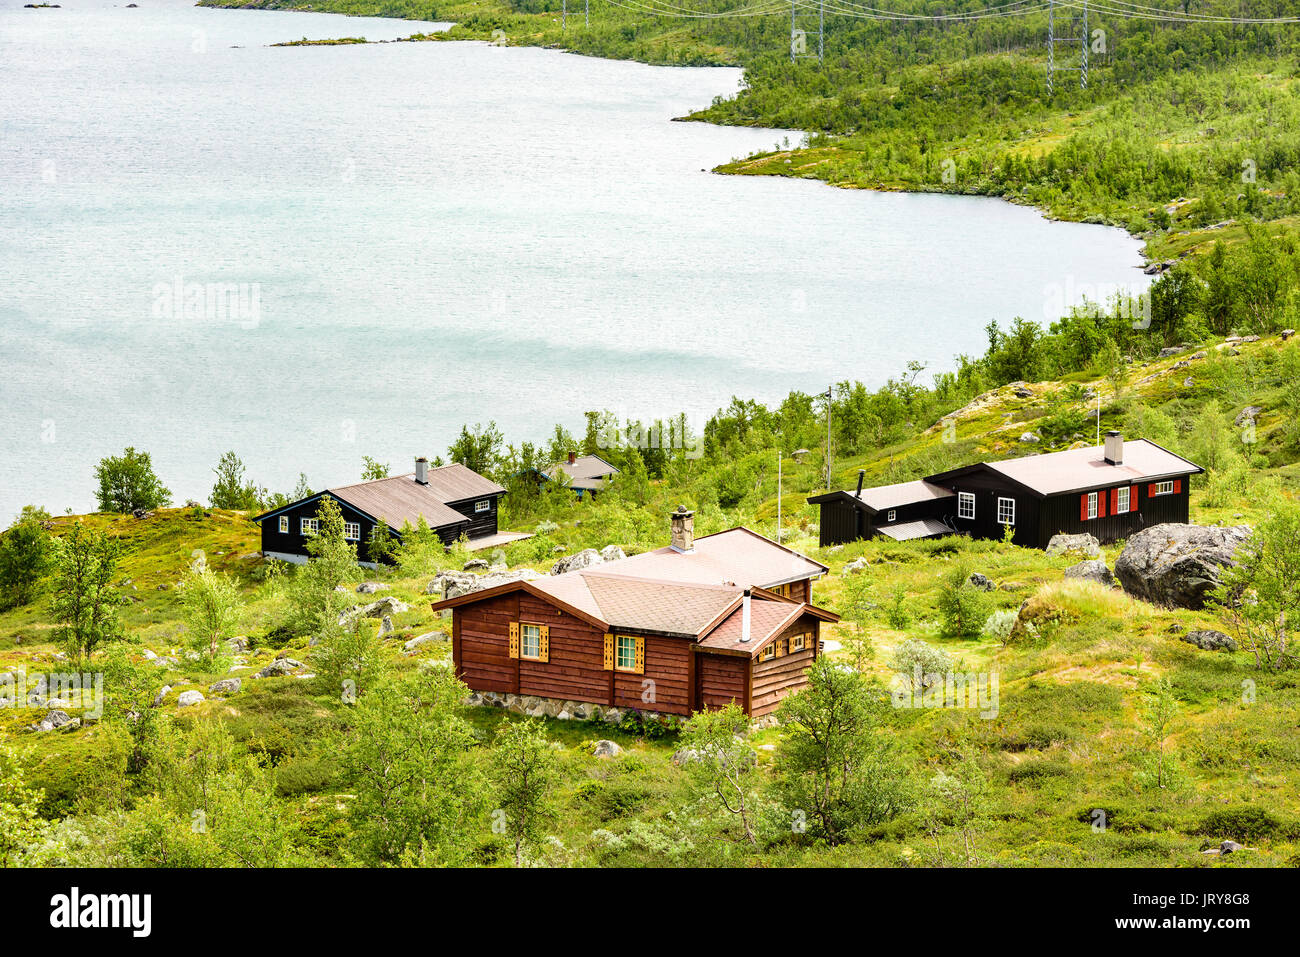 Group of small lakeside cabins in mountainous landscape location hardangervidda in norway